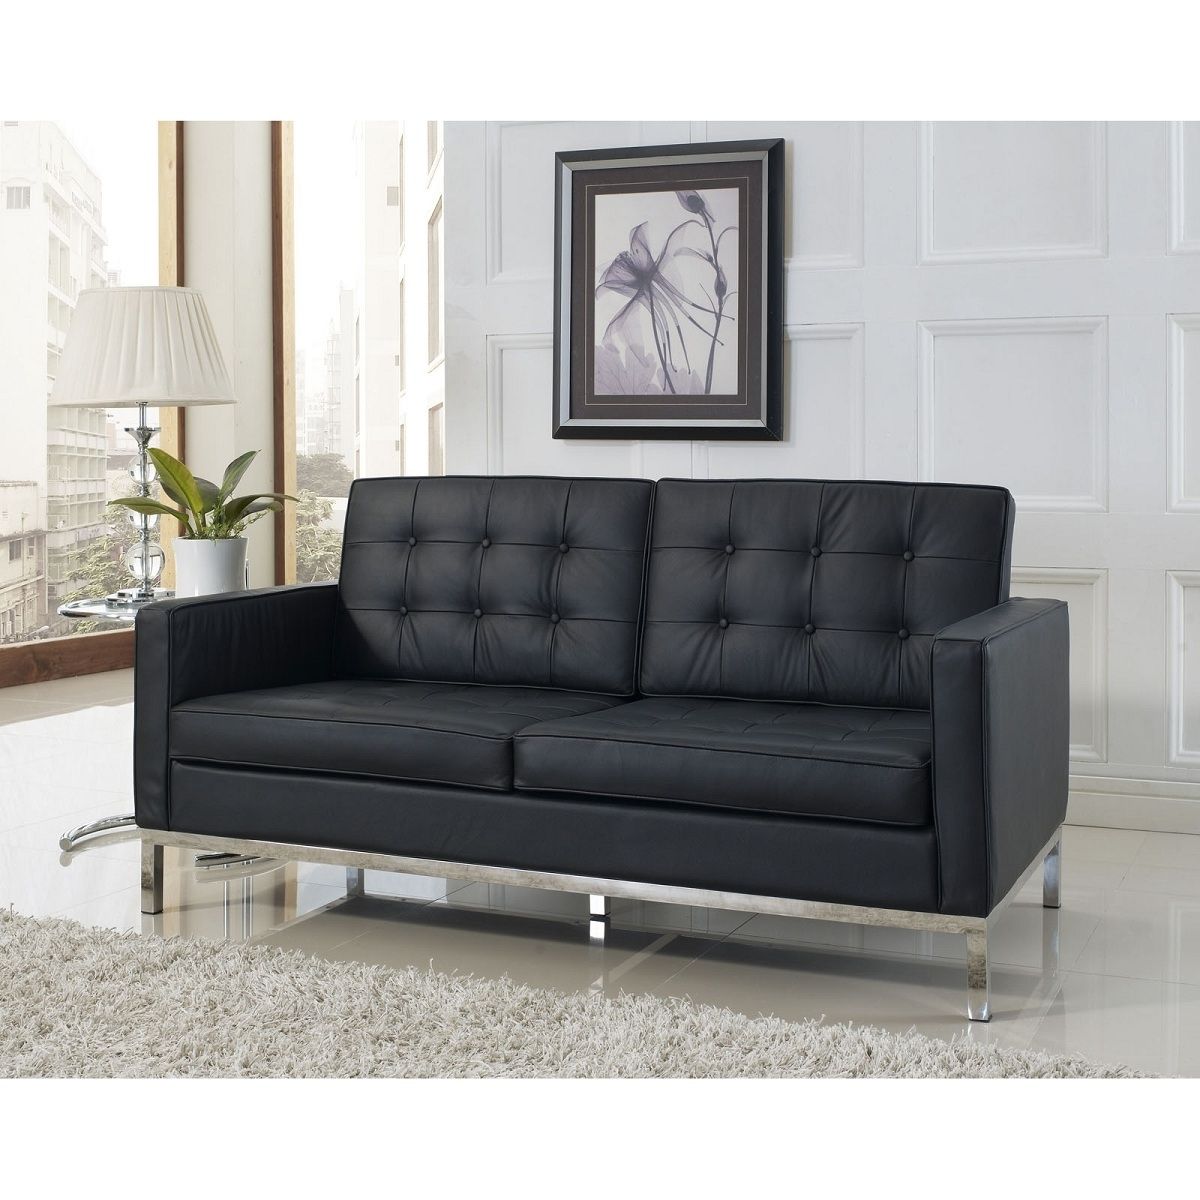 "Well Known Shop Florence 65"" Loveseat For Only $2880 Inside Florence Knoll Leather Sofas (View 17 of 20)"